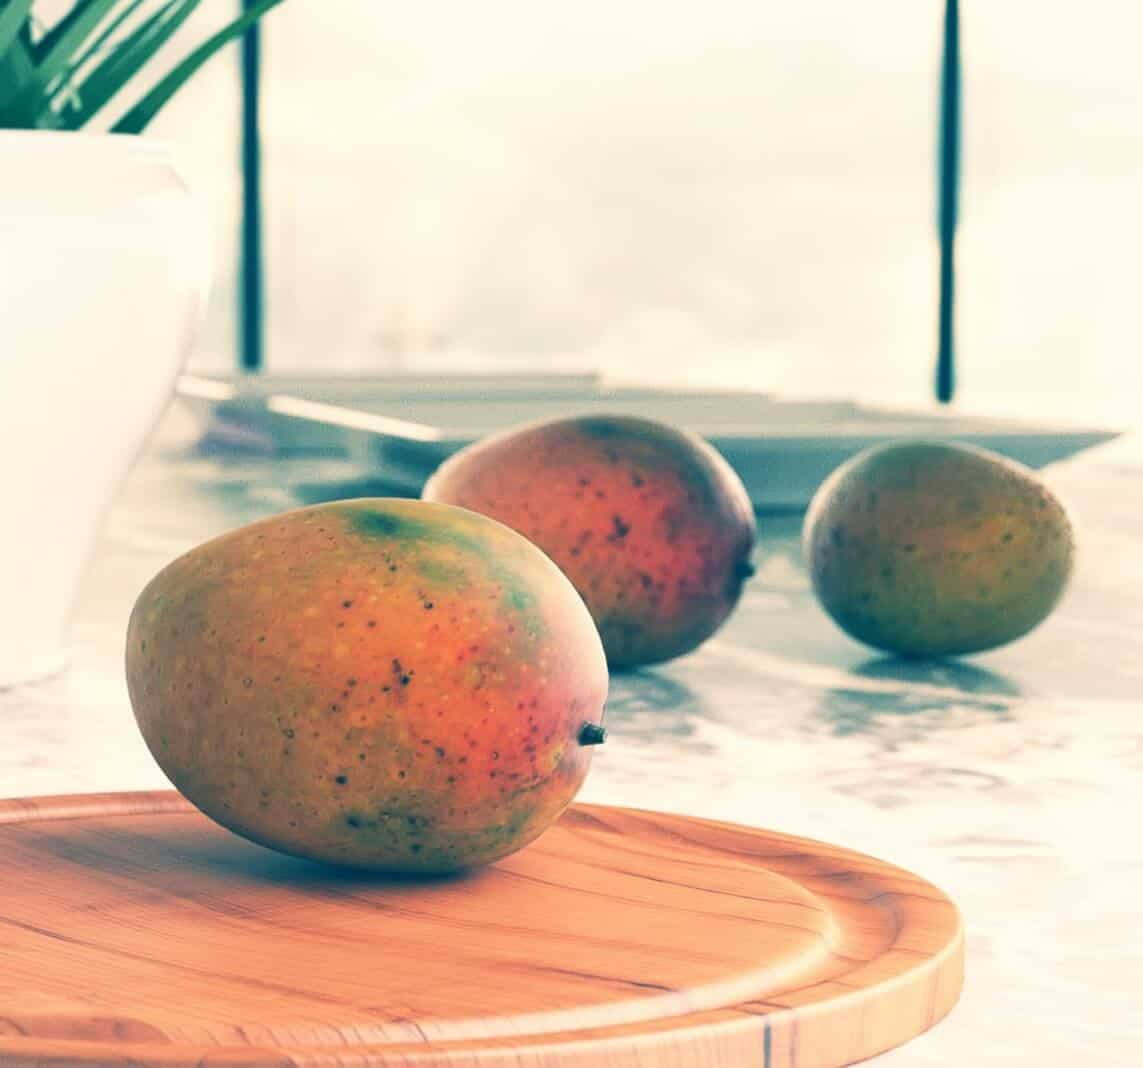 mango fruit and weight loss